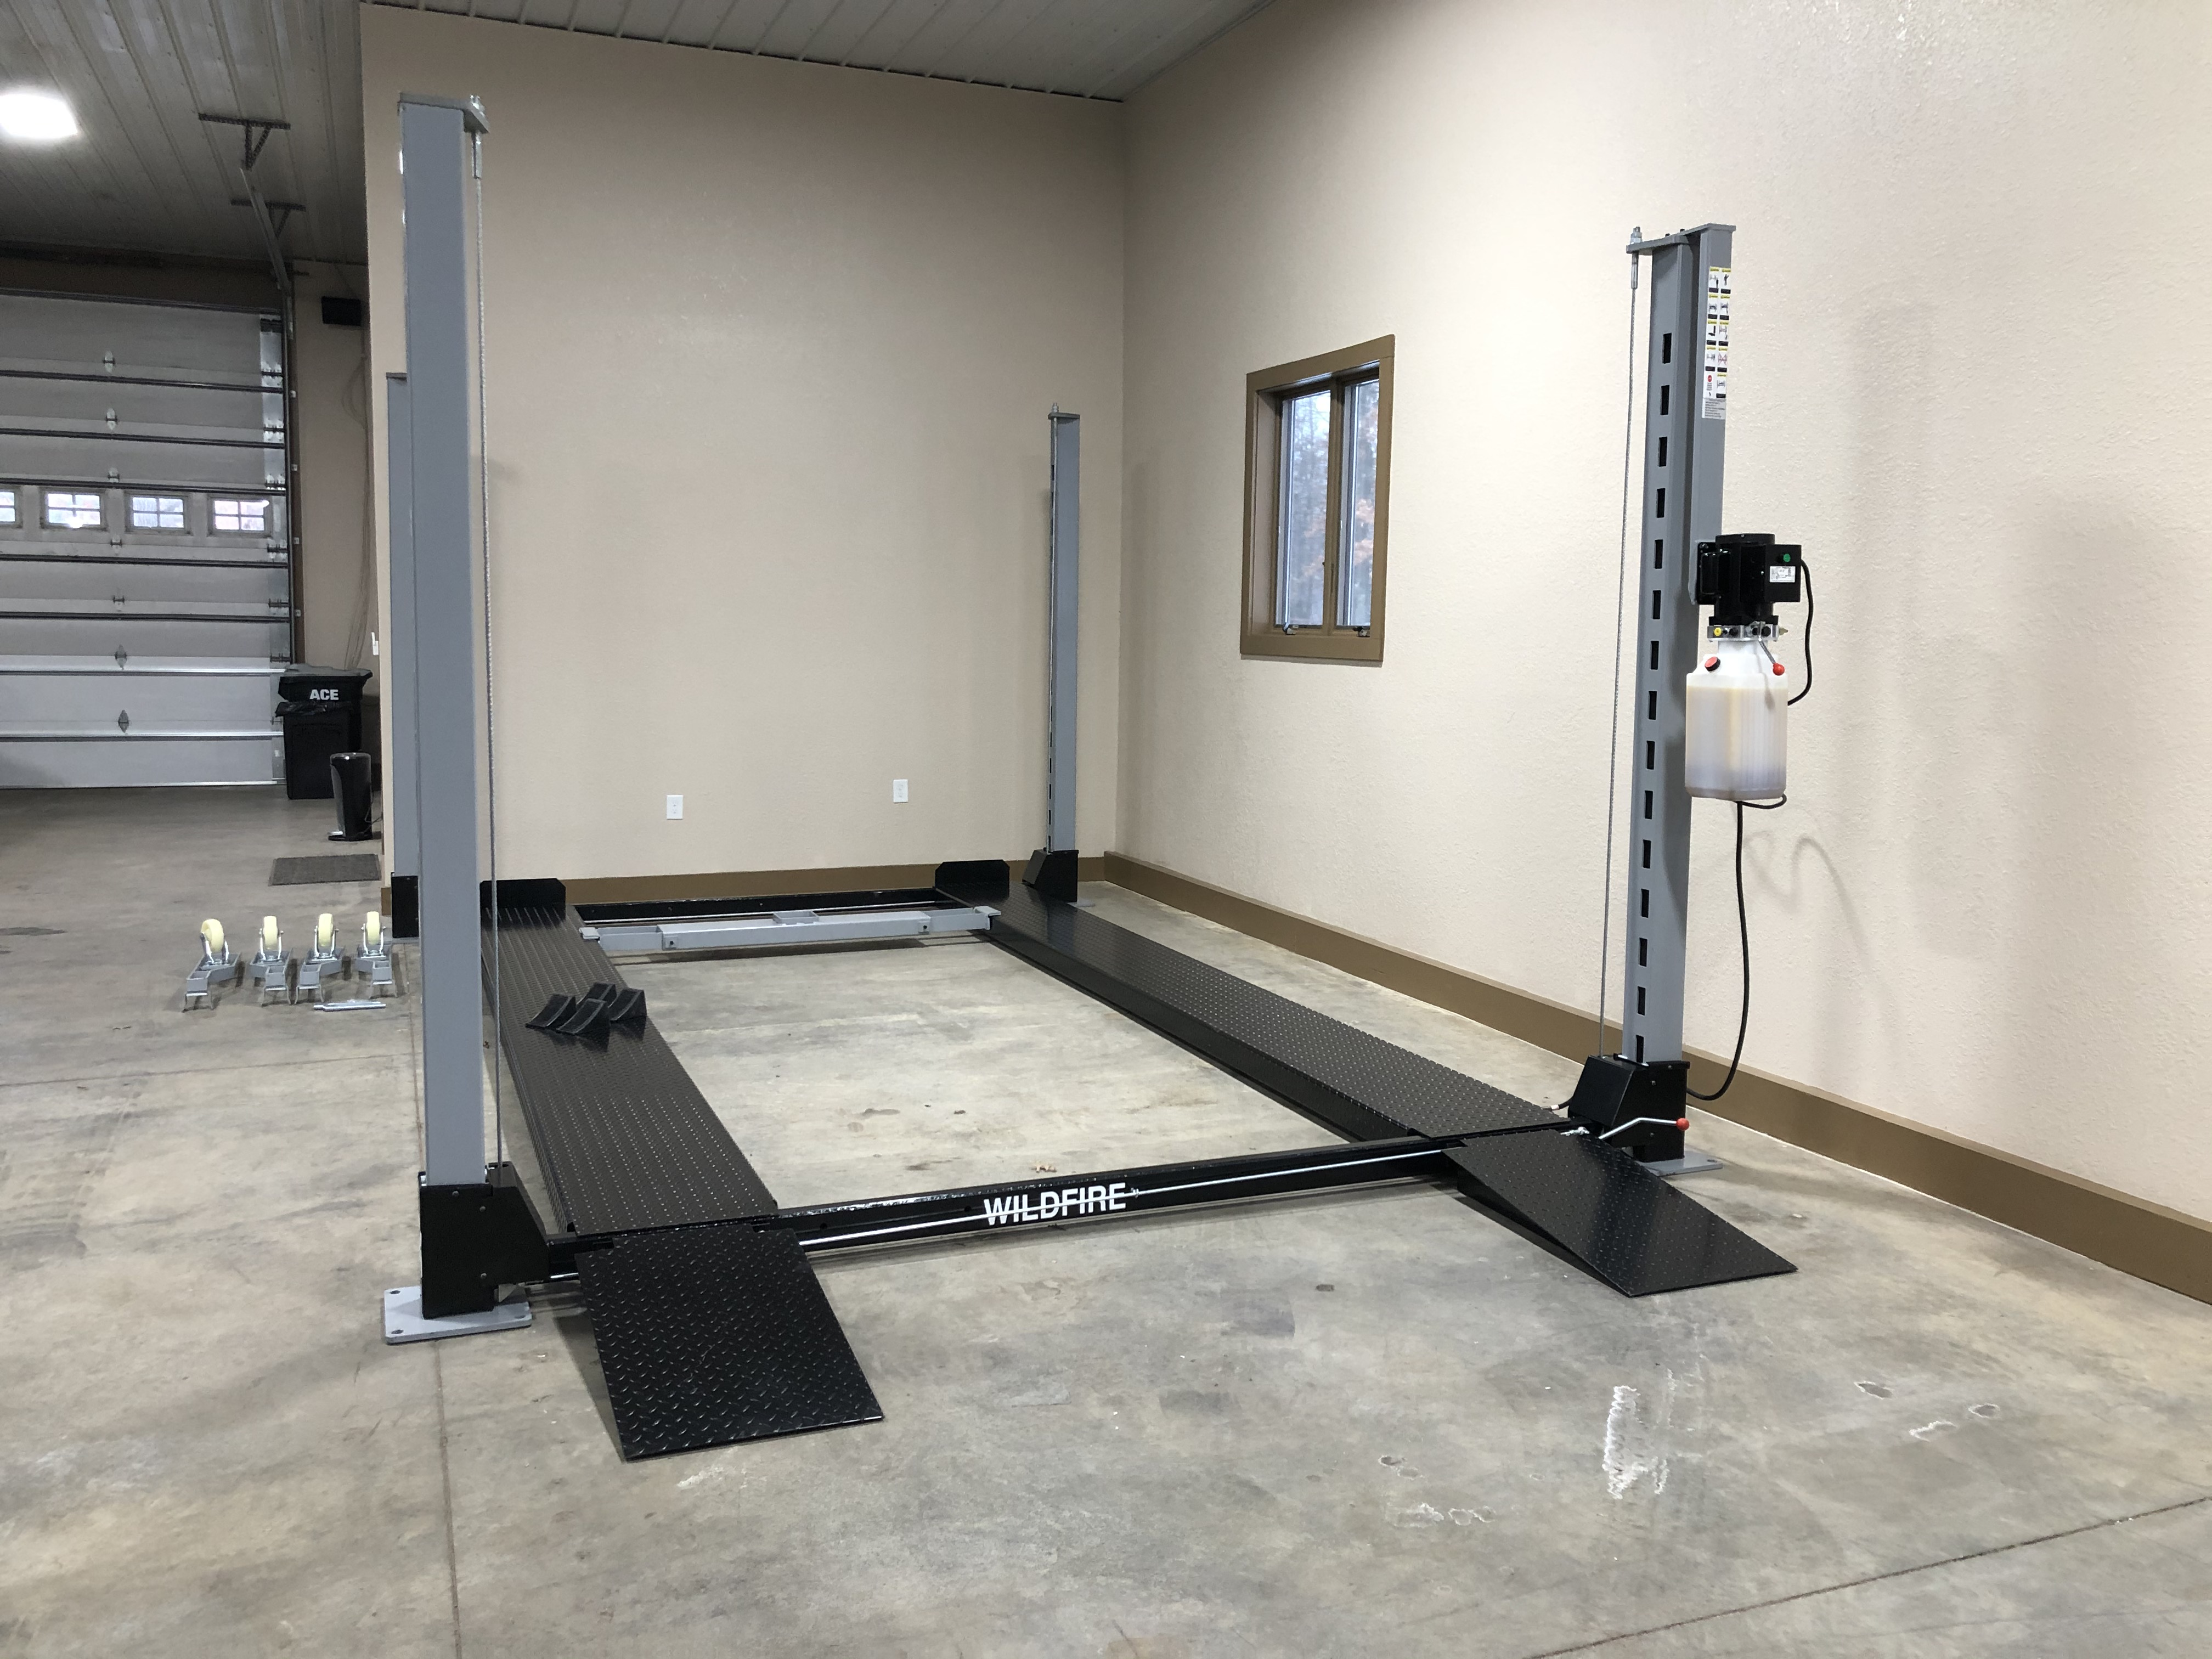 4 Post Trailer Lift with Telescoping Ton